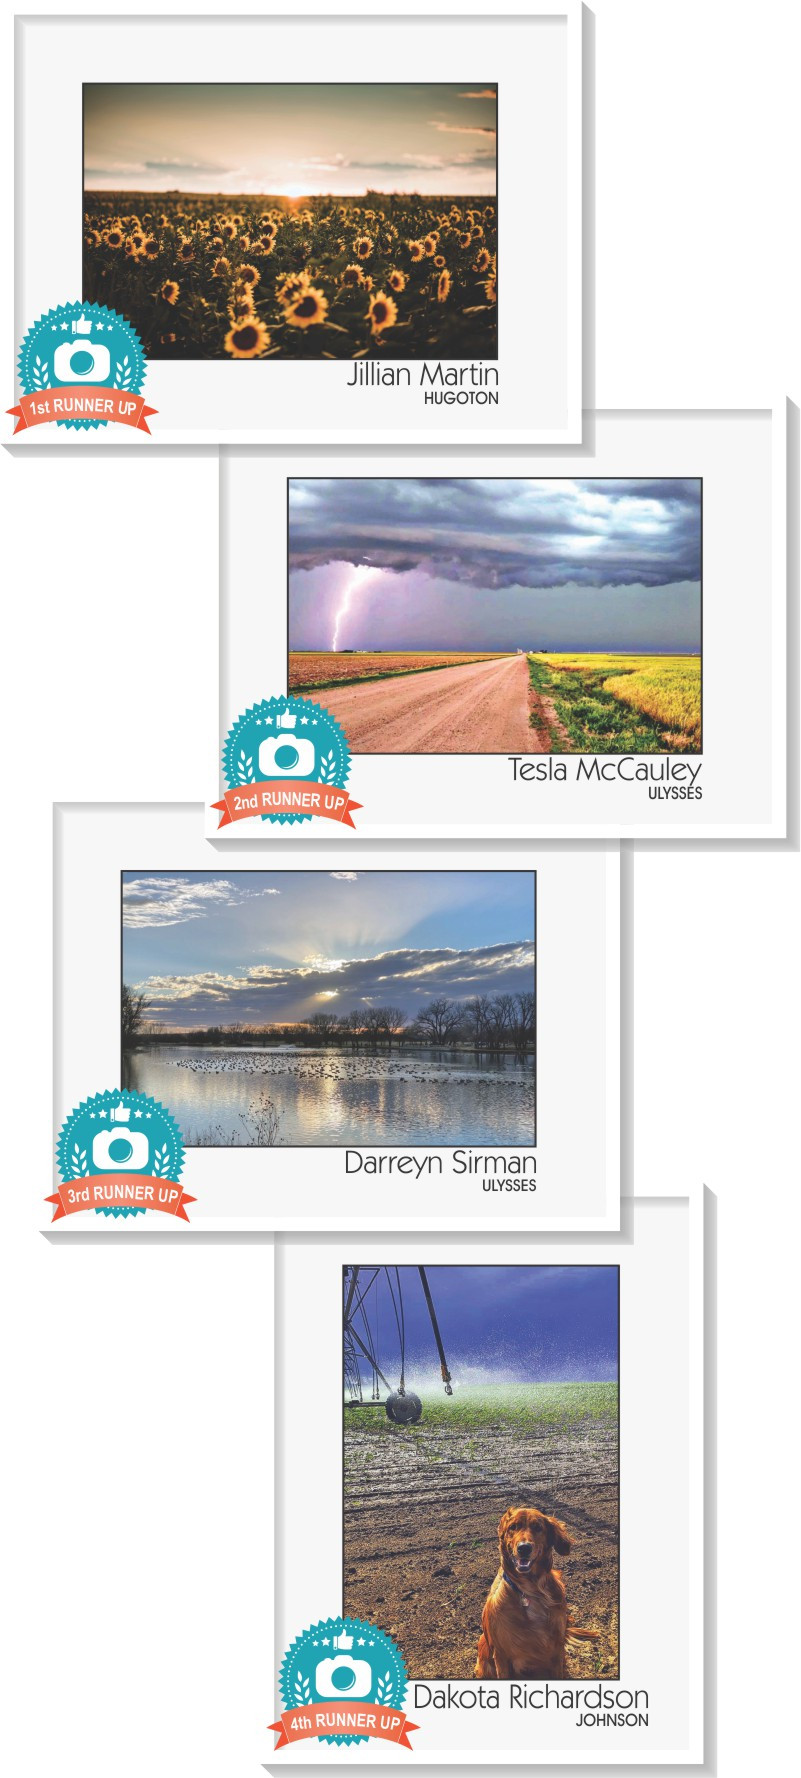 2021 Directory Cover Contest Winners